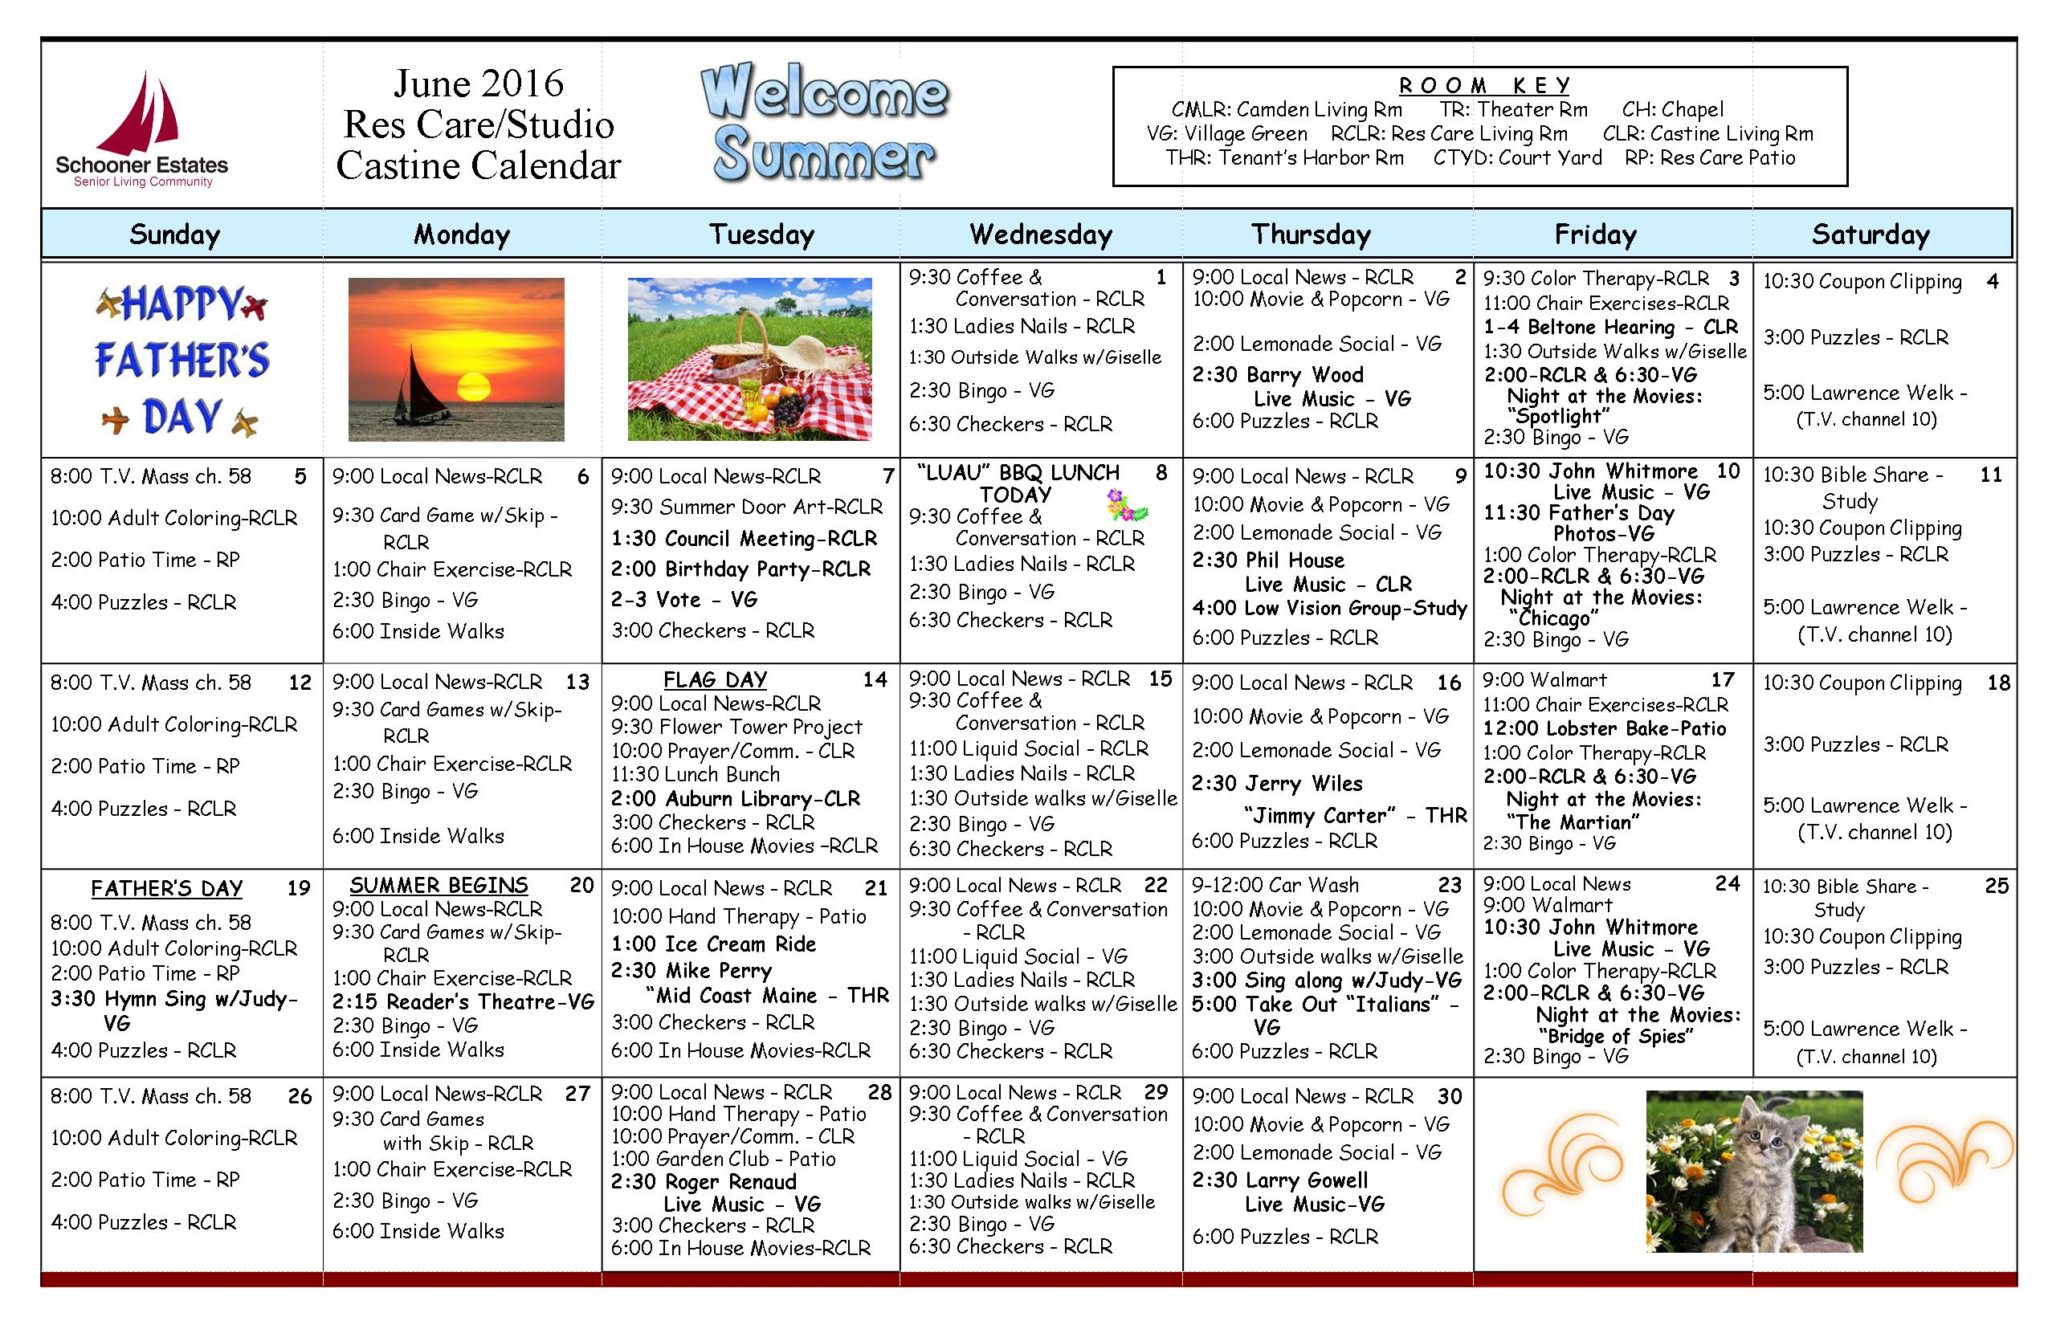 June 2016 Schooner Estates Activity Calendars